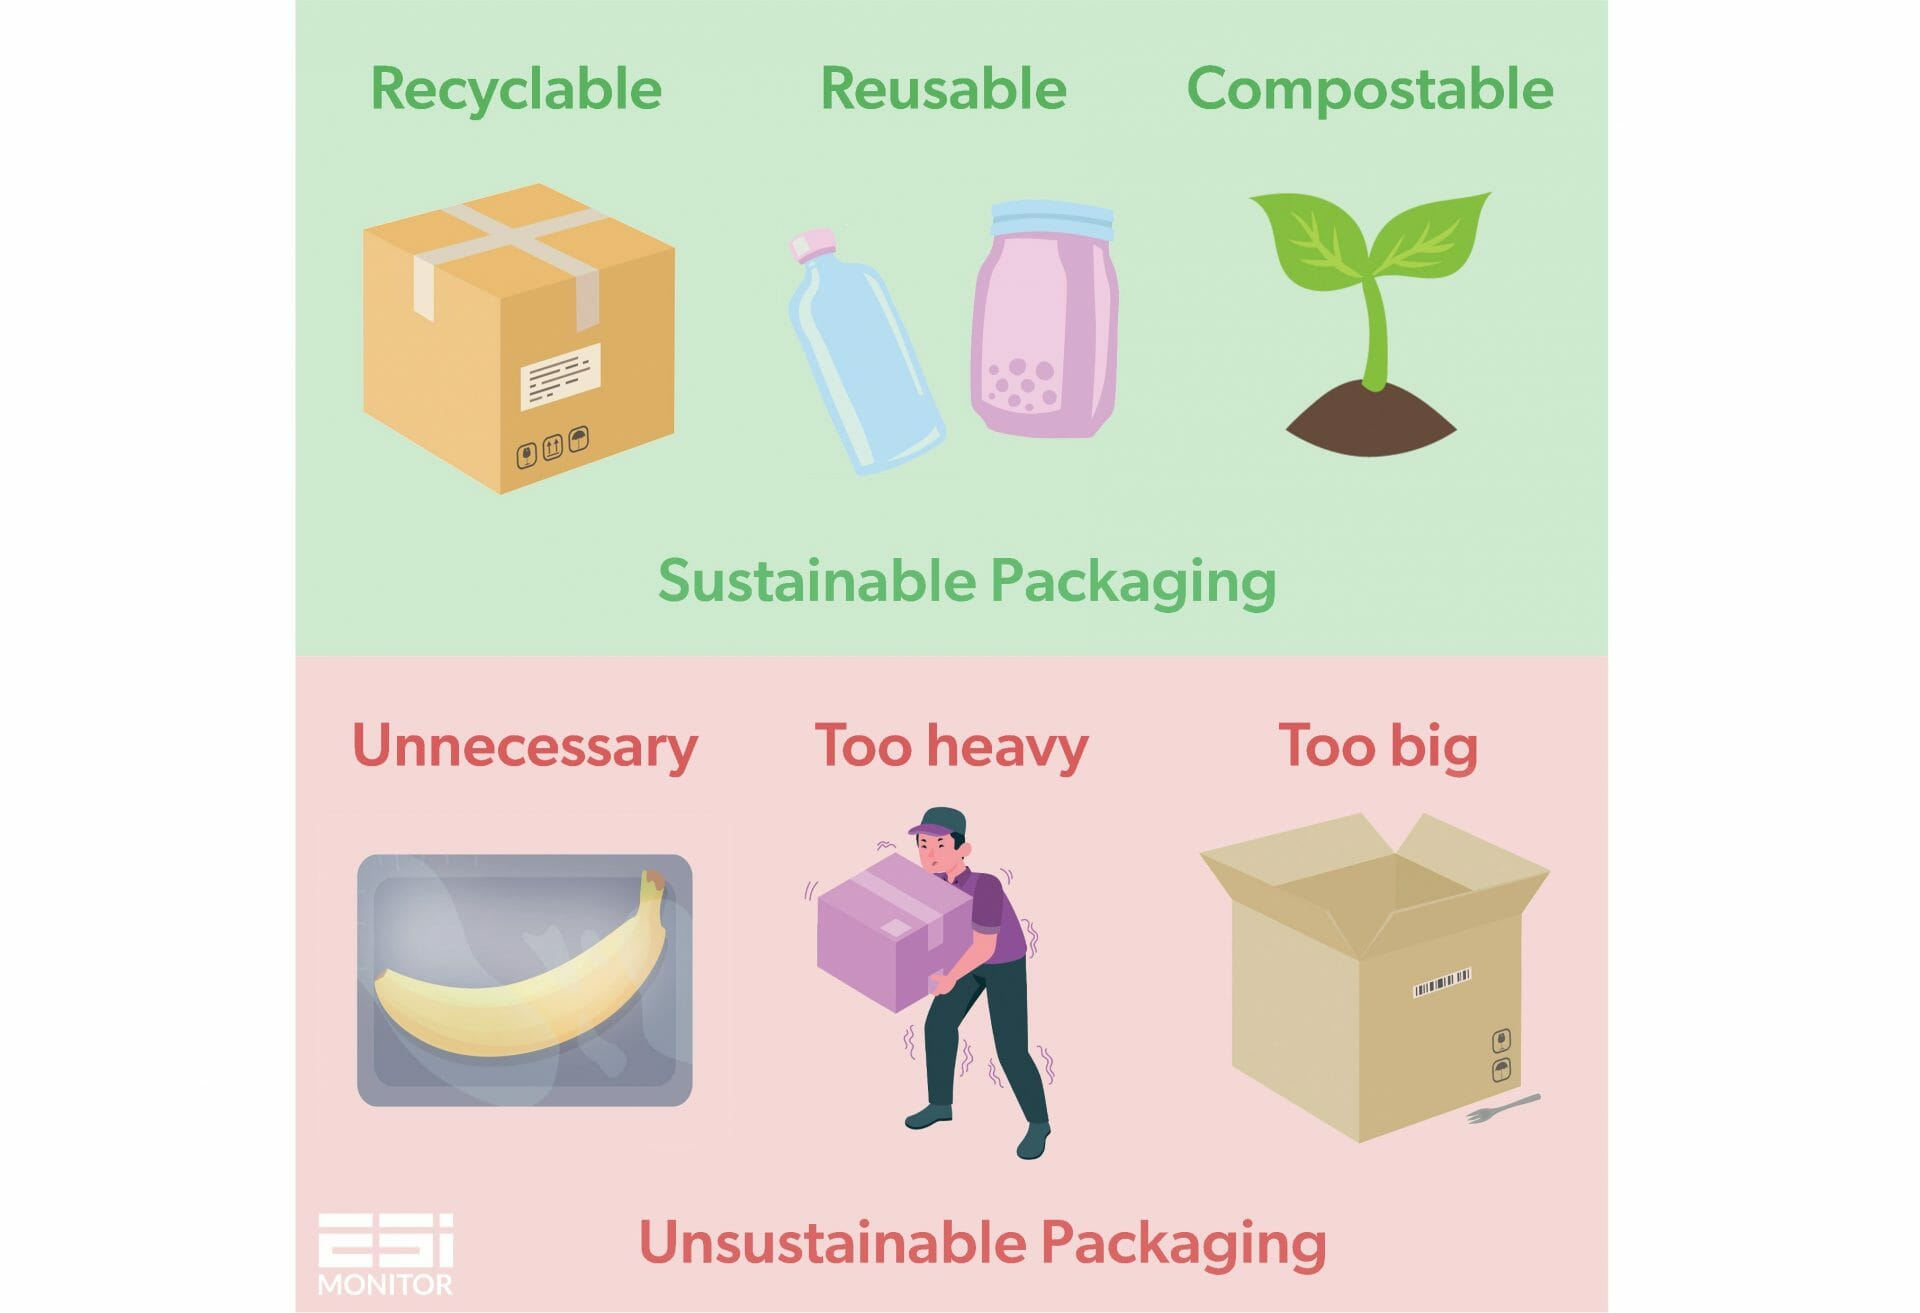 sustainable packaging graphic - compost